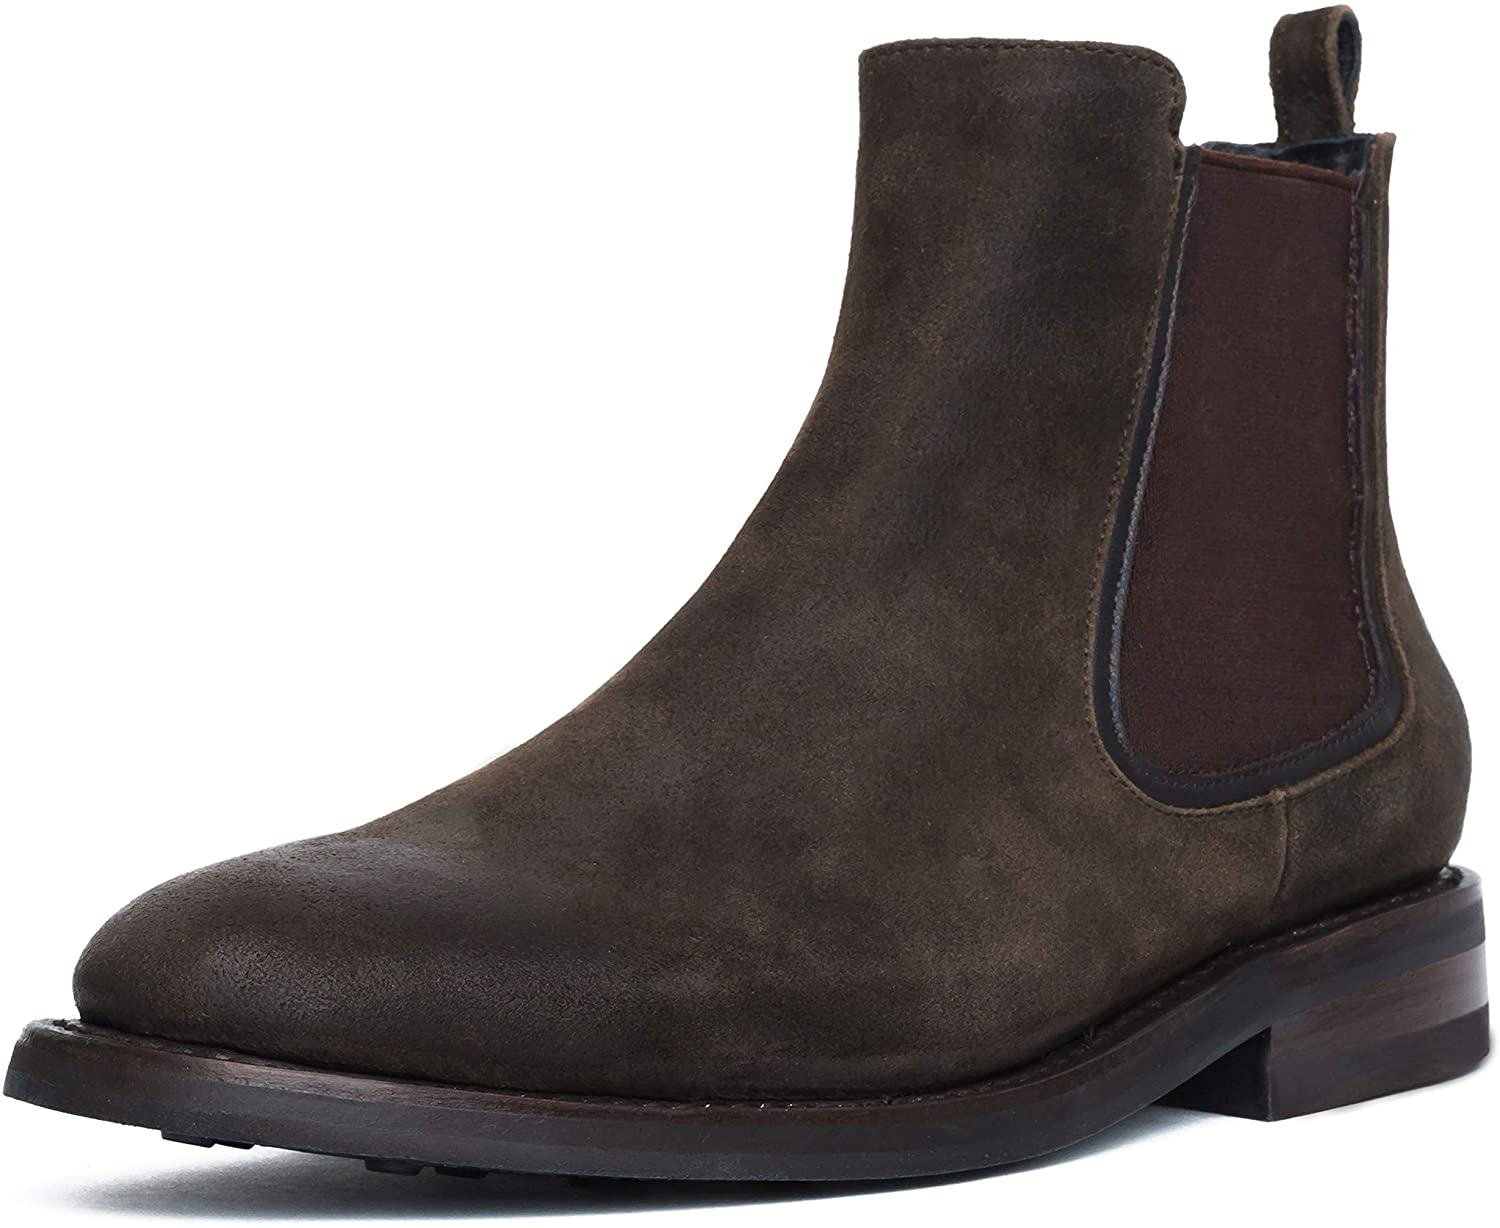 The 17 Best Chelsea Boots to Buy for